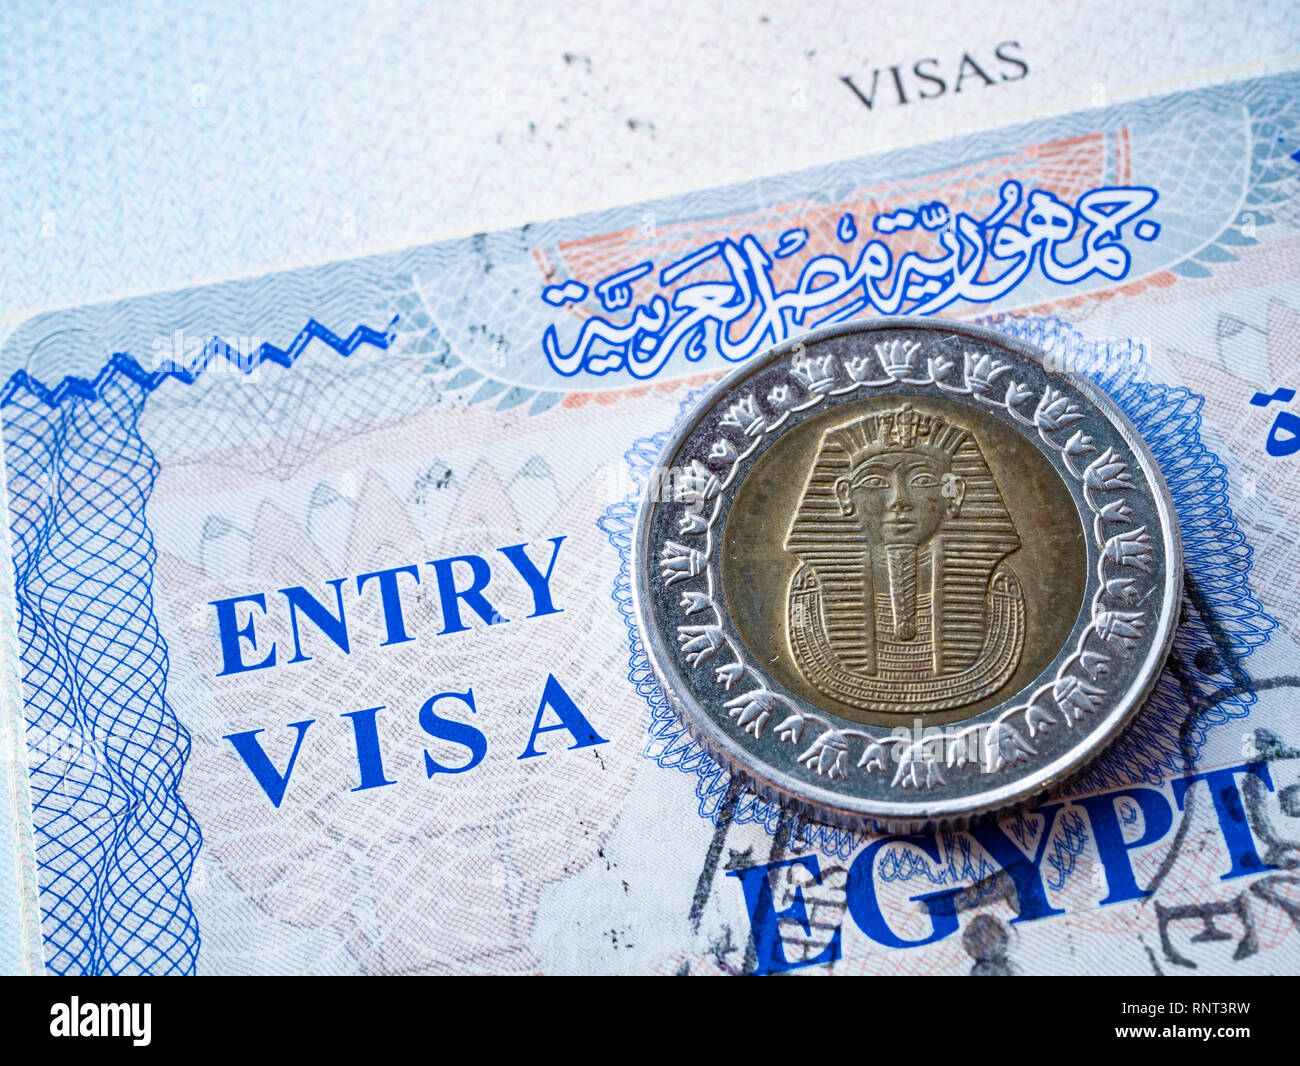 Close Up De L Egypte En Visa Passeport Etranger Avec Piece